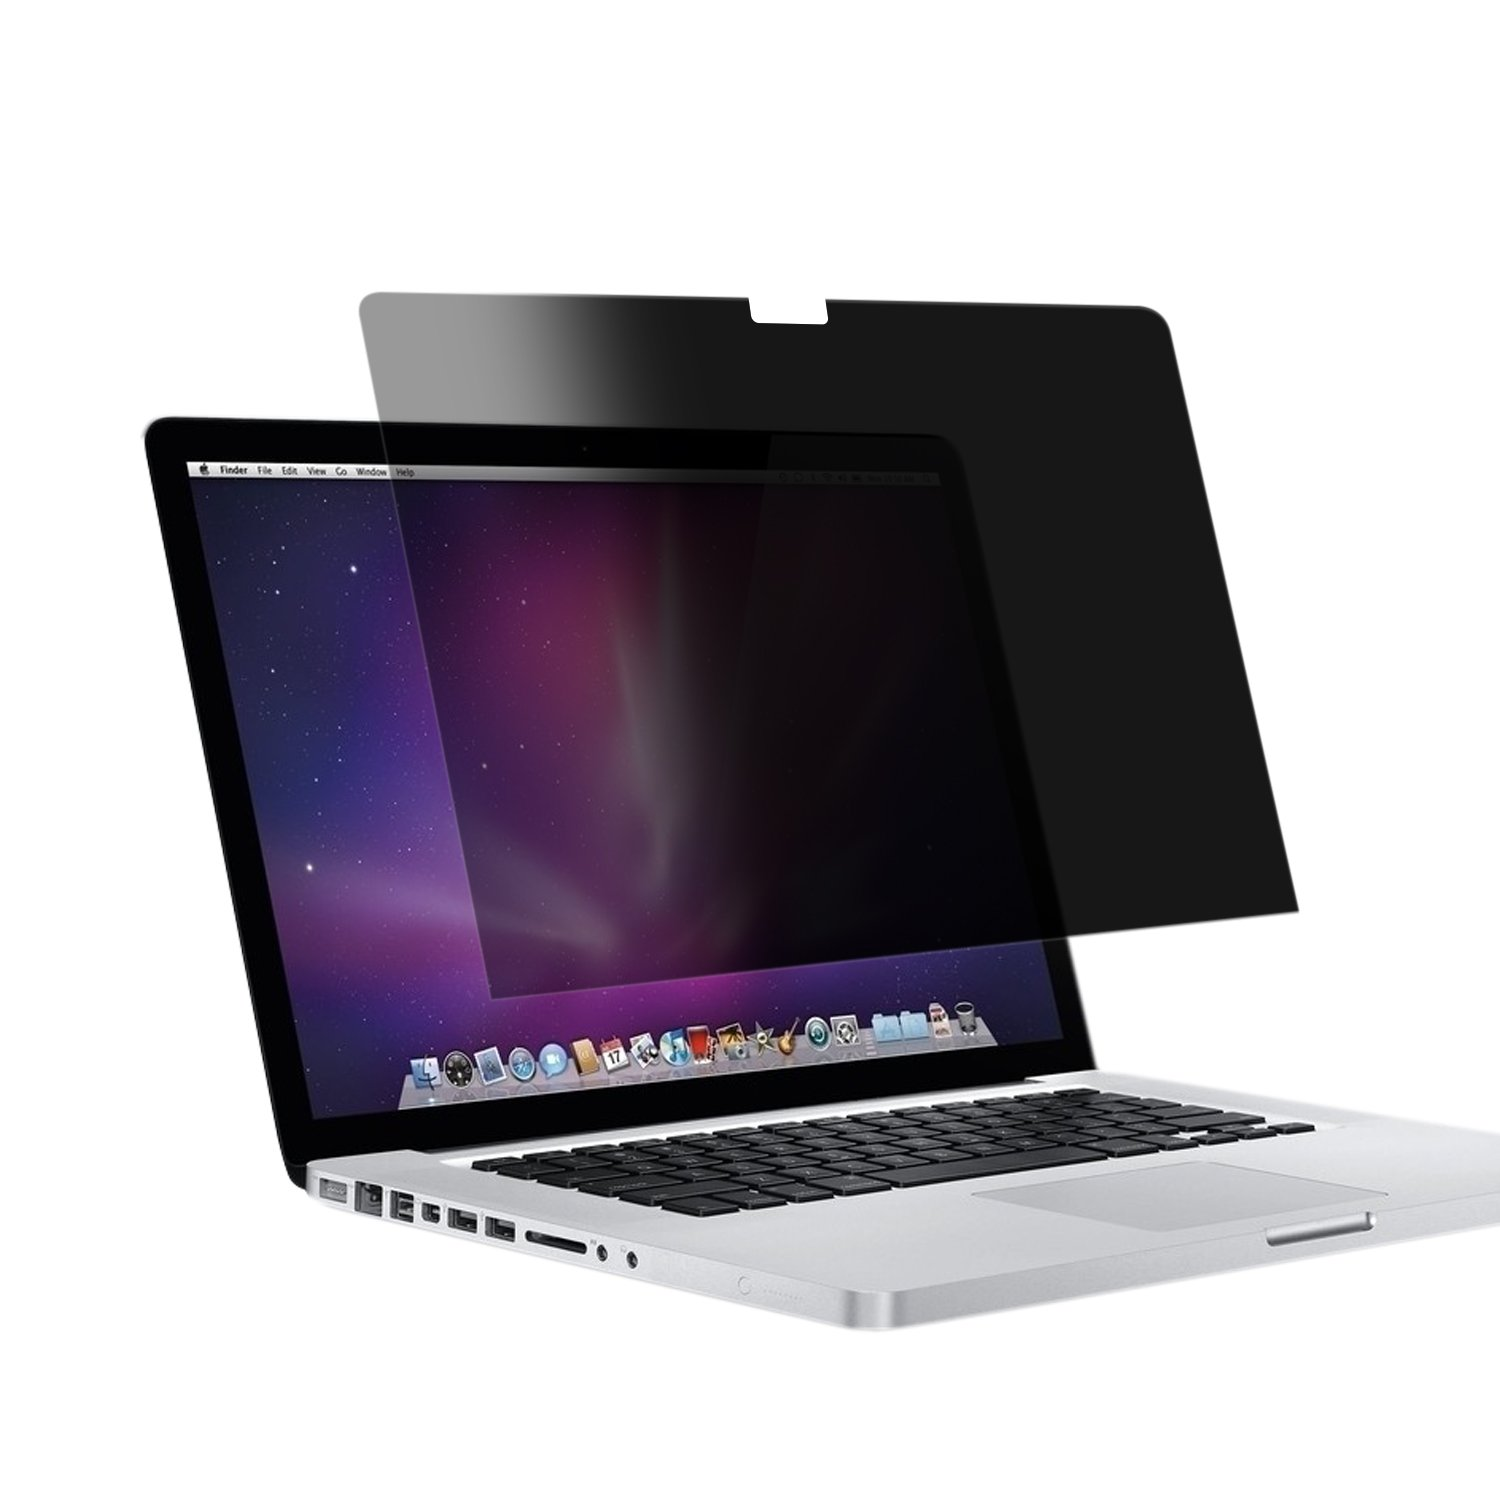 Privacy Screen Protector, LILIONGTH Anti-Spy Guard Filter Compatible MacBook Pro 15 Inch (Model: A1707) 2016/2017/2018 Released by LILIONGTH (Image #1)